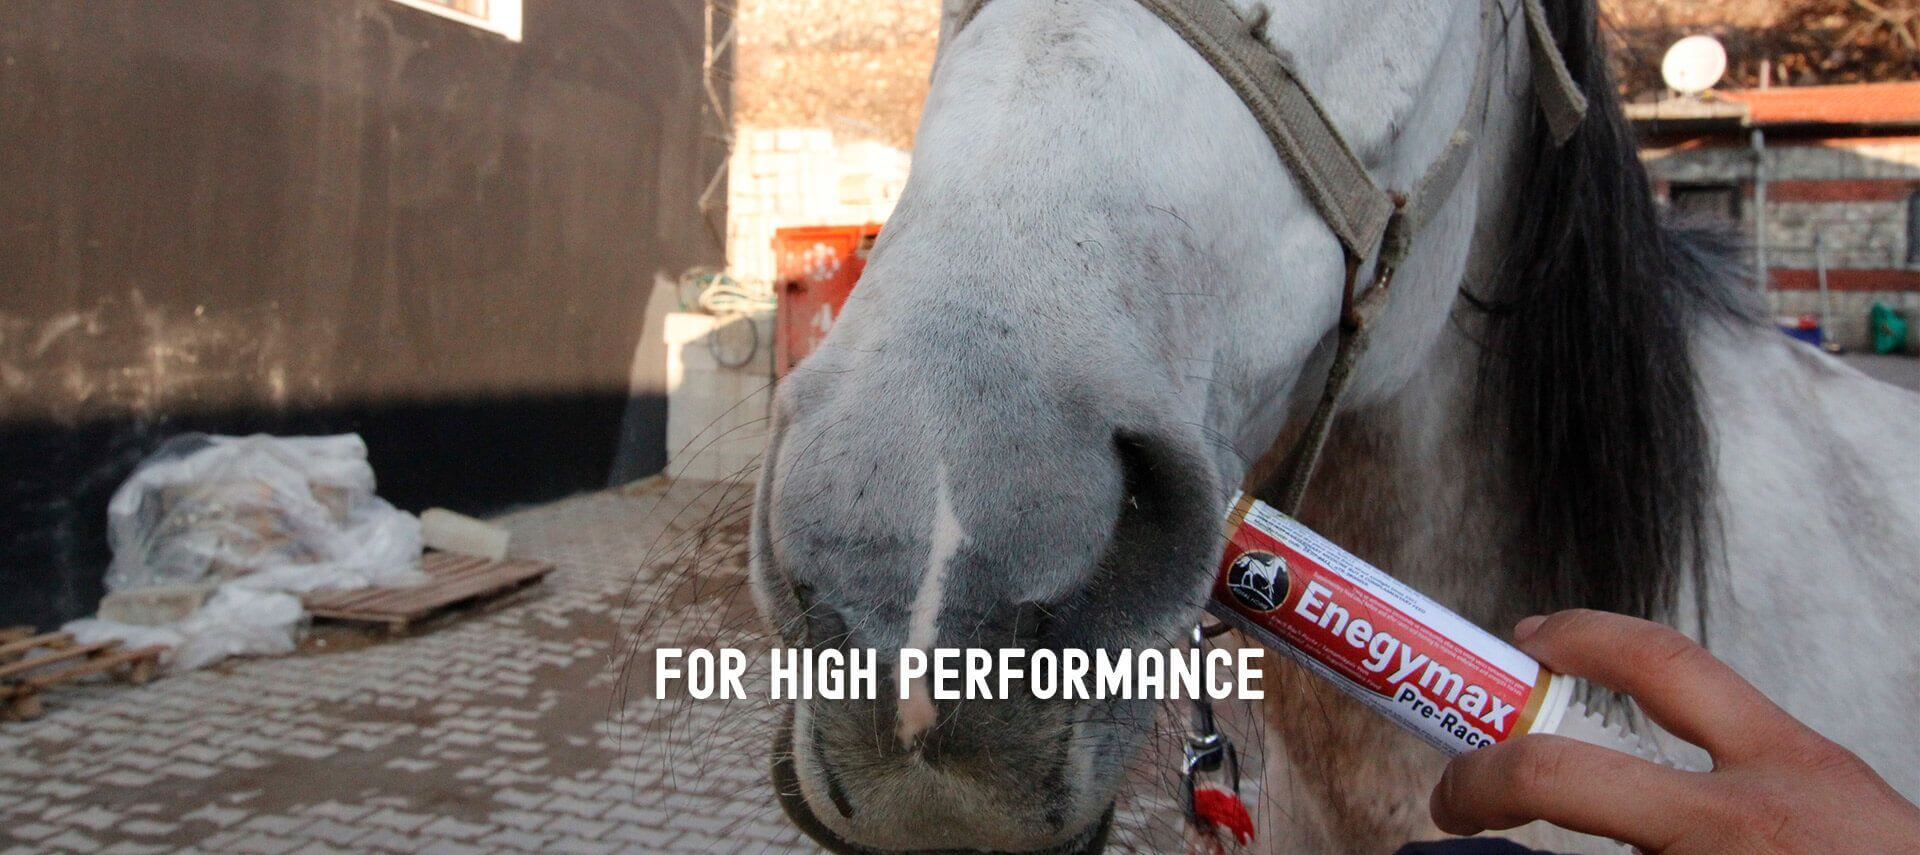 For high performance